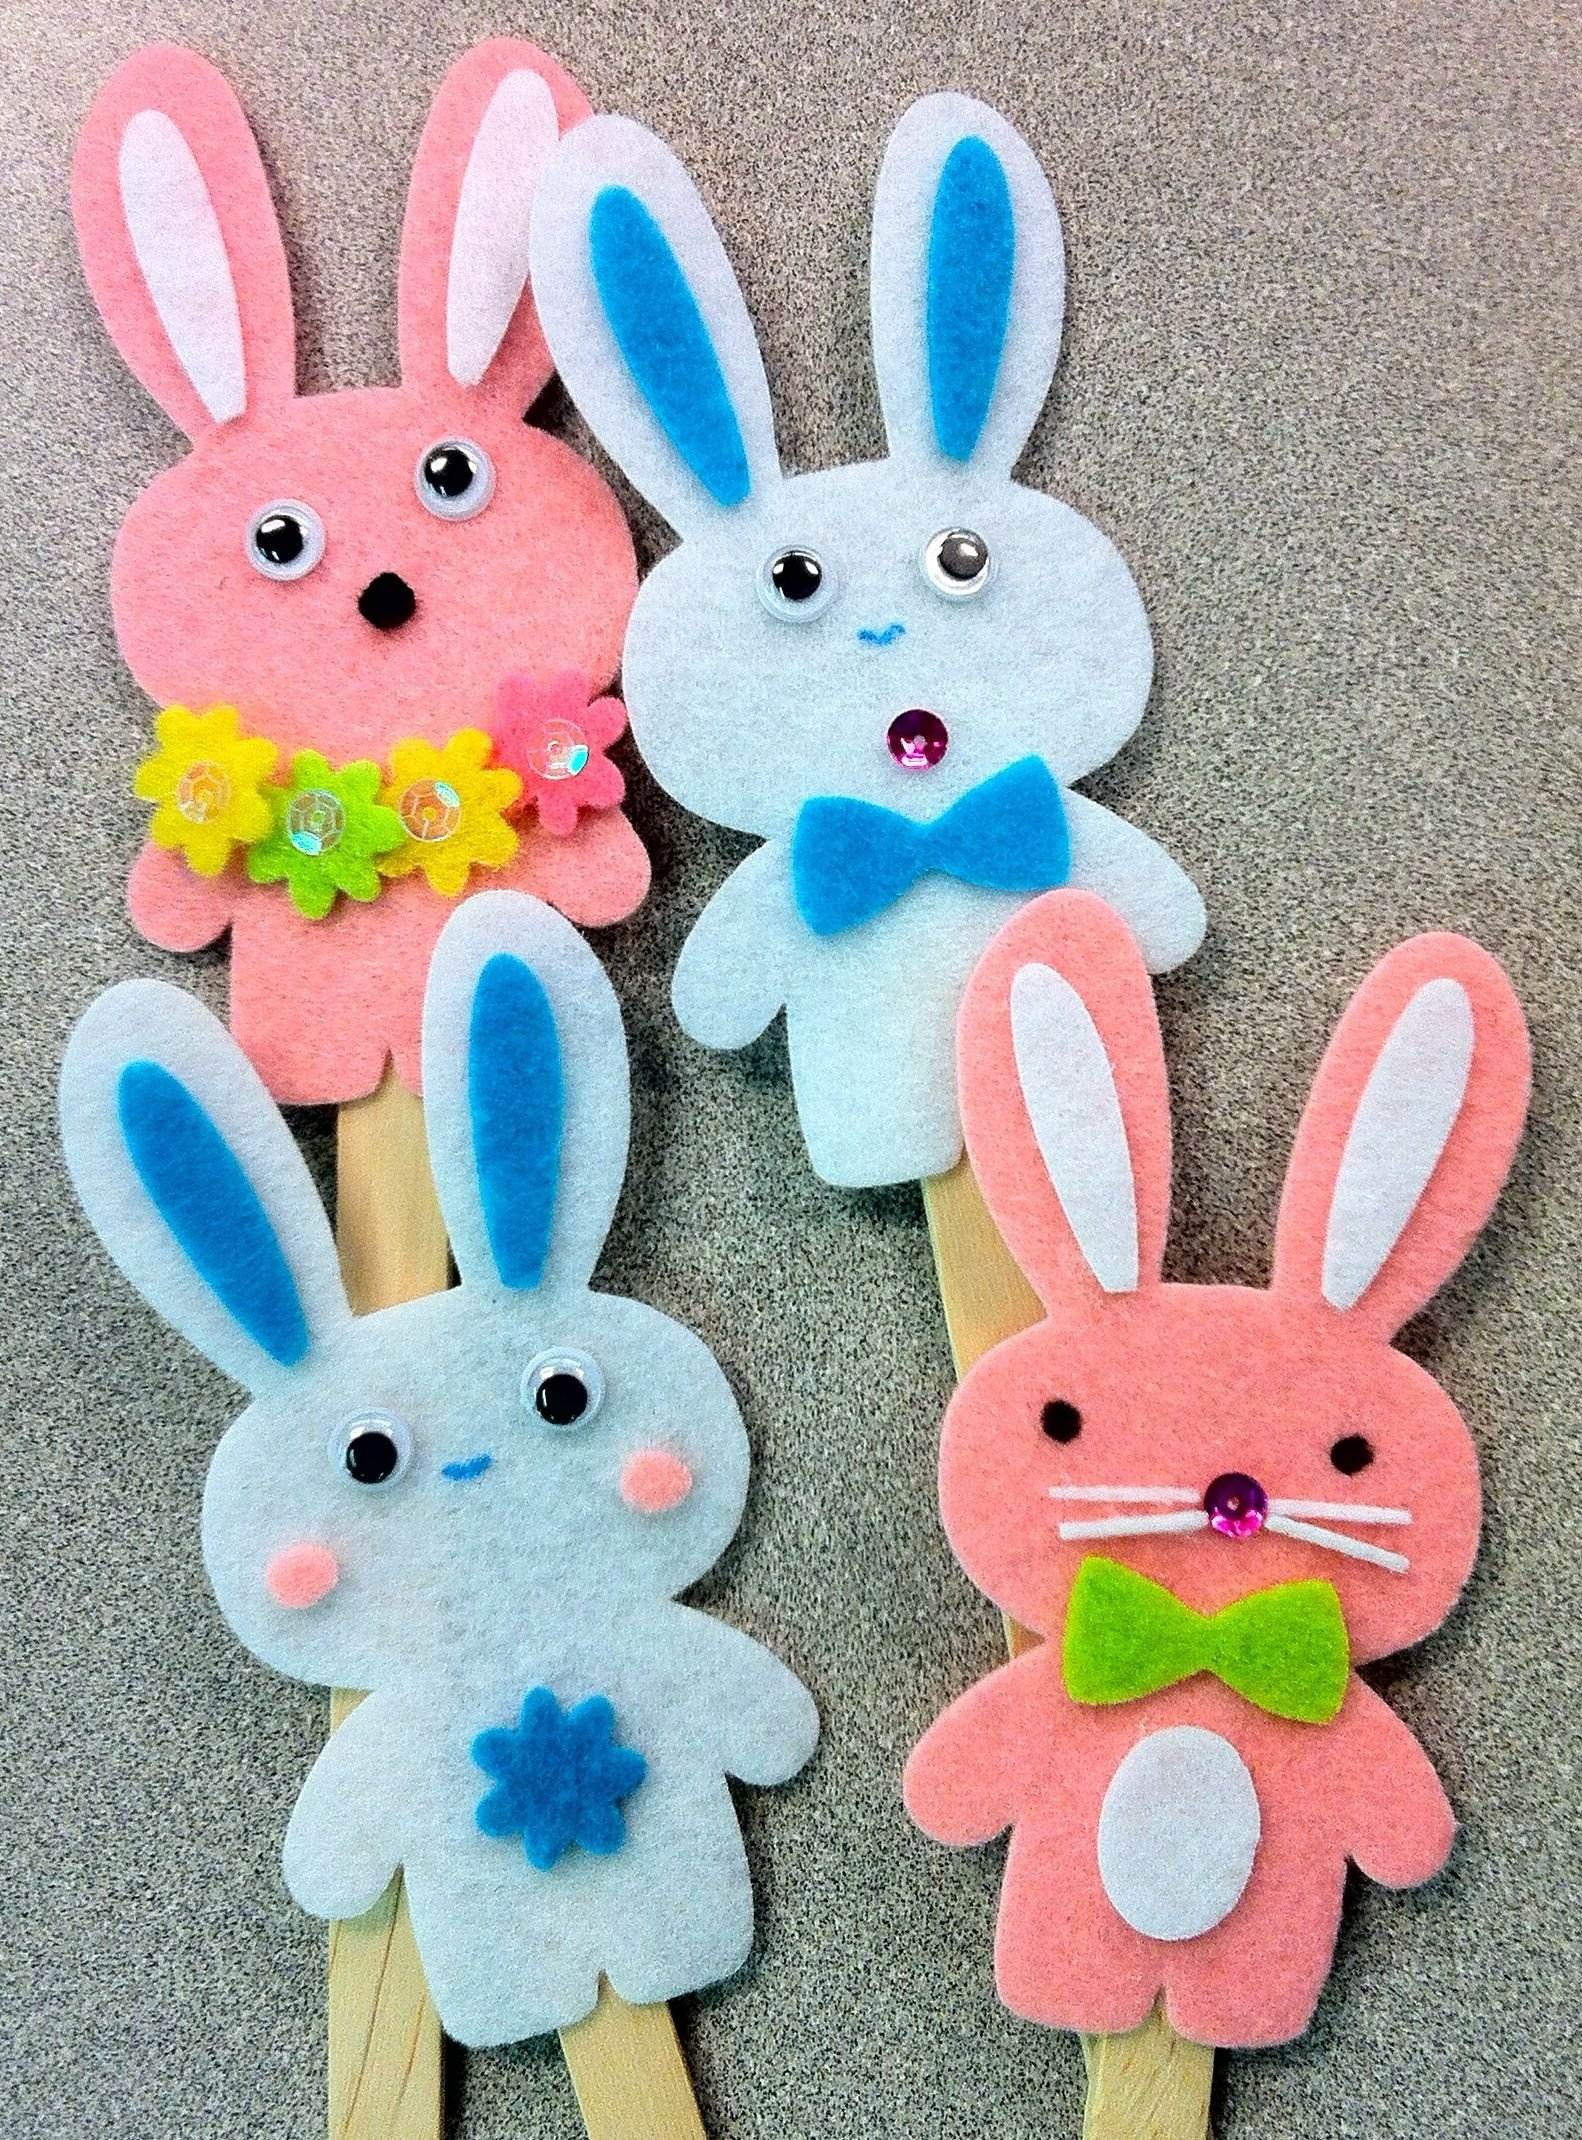 10 Fashionable Easter Arts And Crafts Ideas 30 creative easter craft ideas for kids easter crafts easter and 2021